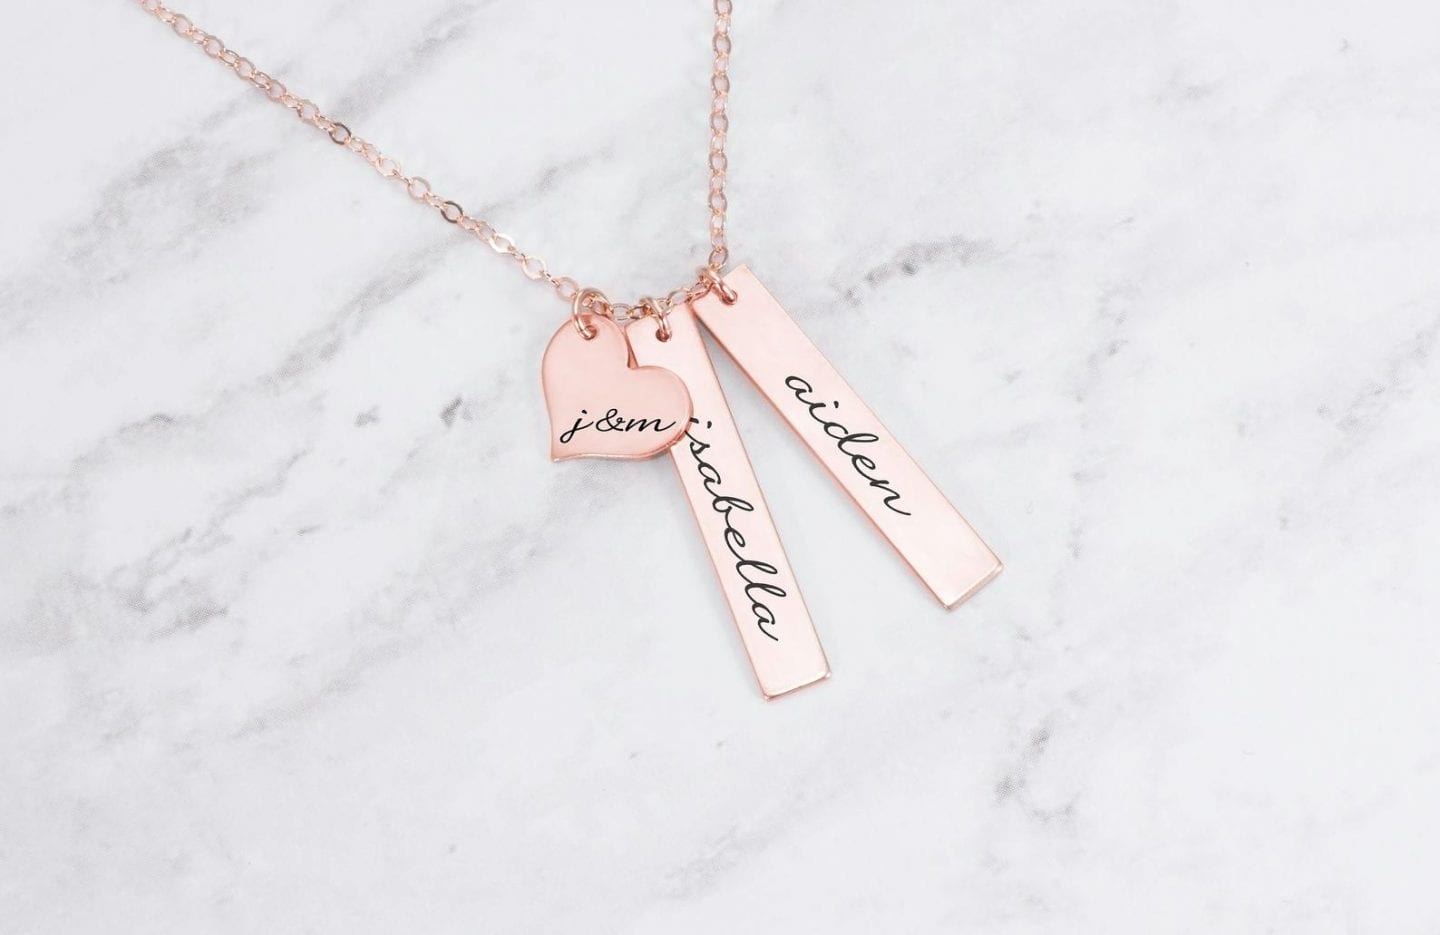 Initial Jewelry by popular San Francisco fashion blog, Just Add Glam: image of a personalized necklace.